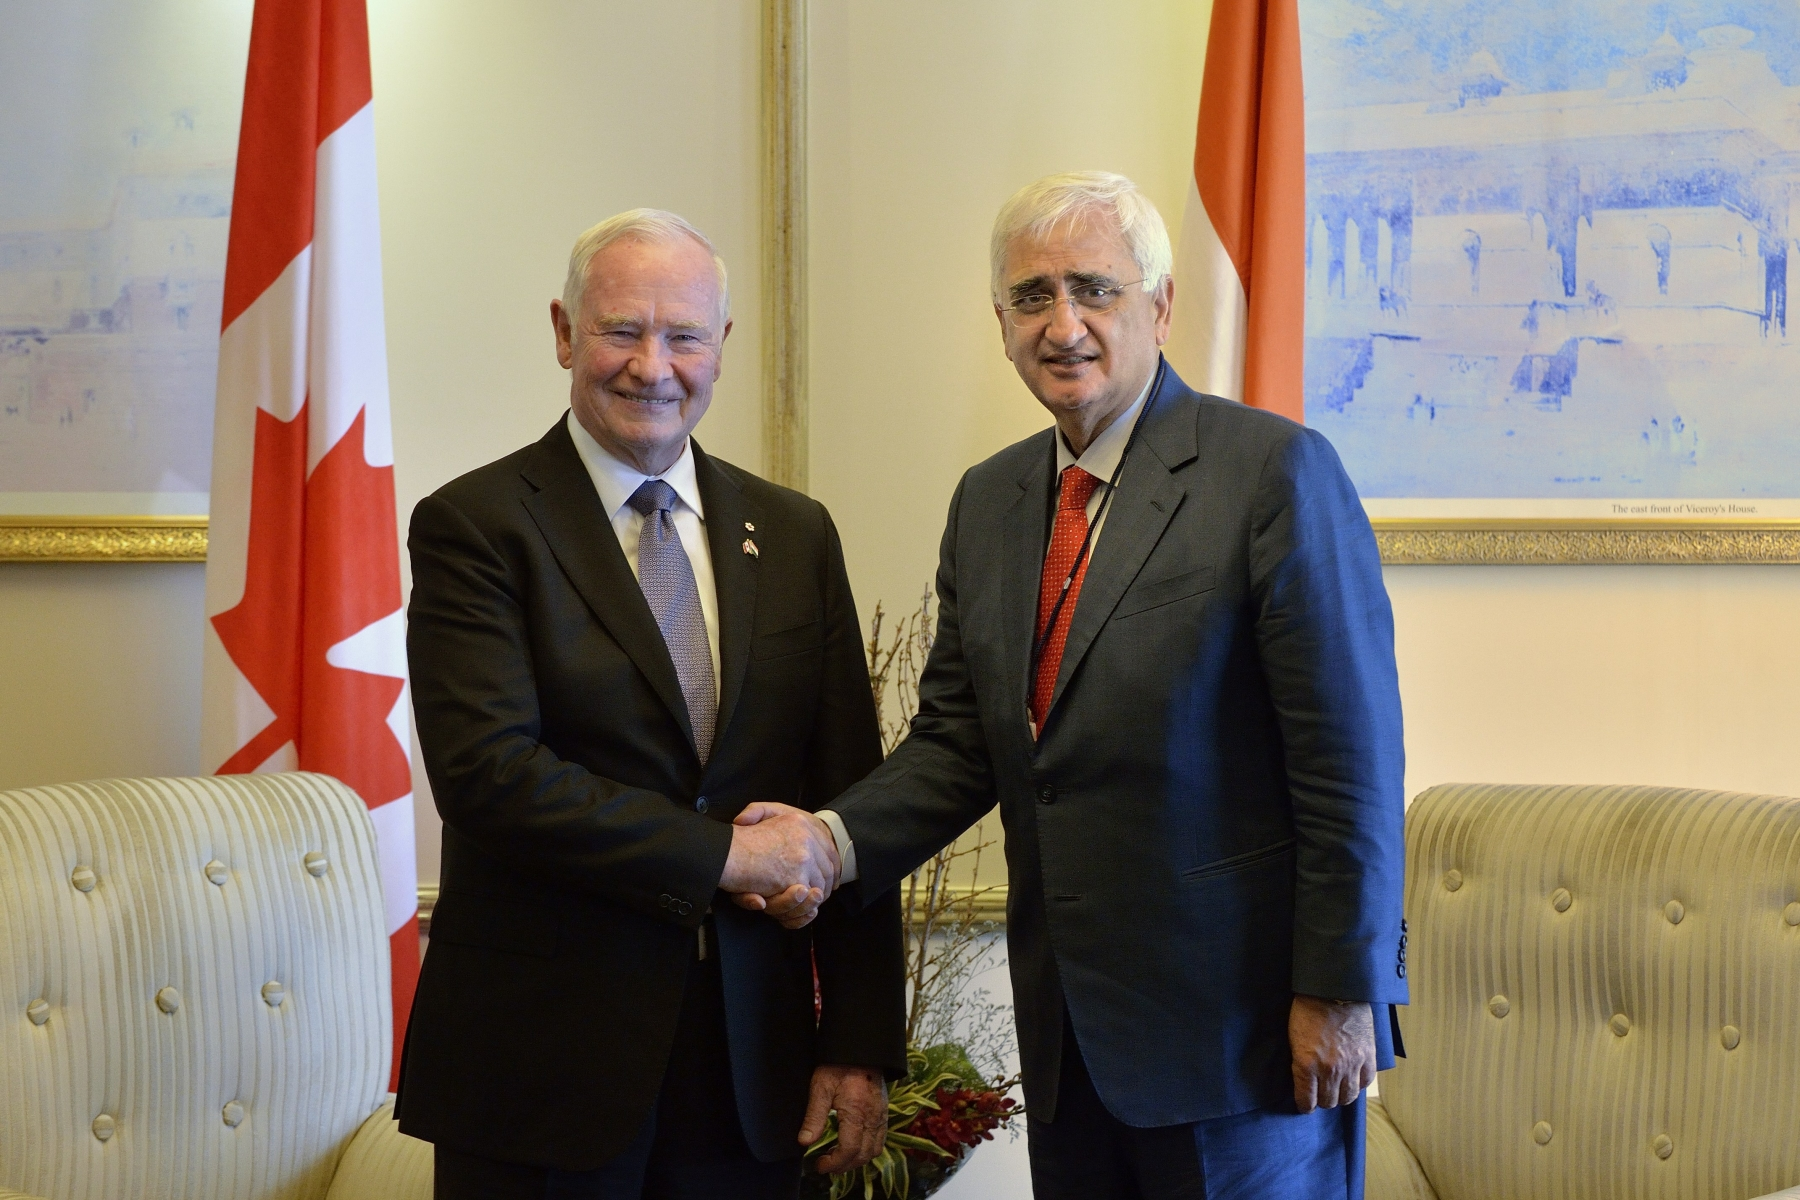 Later that morning, the Governor General met with Shri Salman Khurshid, Honourable Minister of External Affairs.